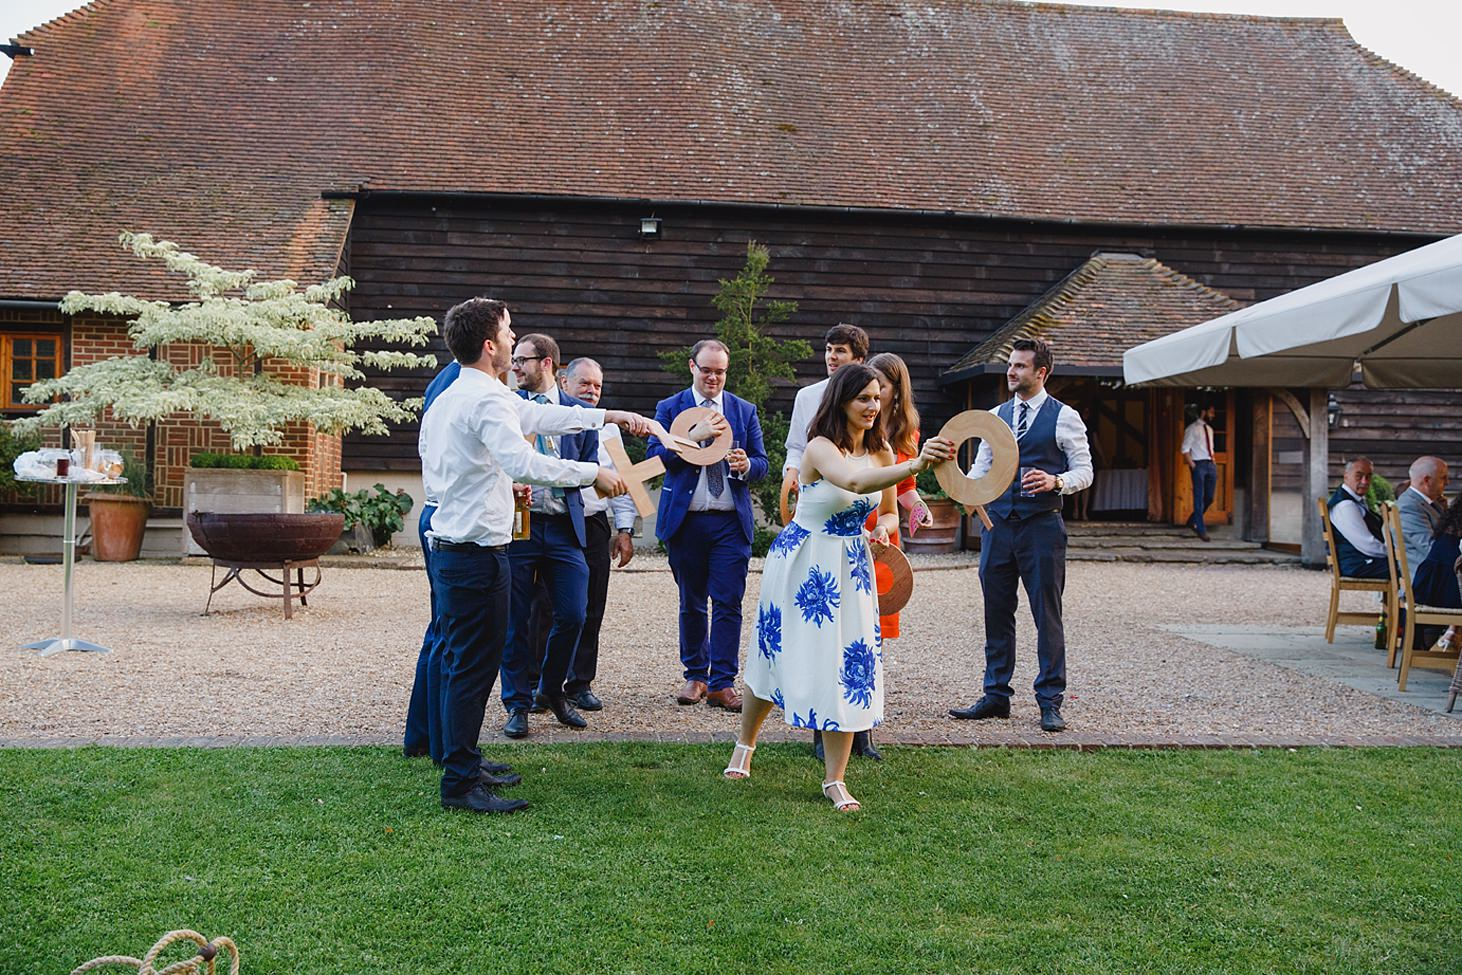 gate street barn wedding photography wedding guest throwing game